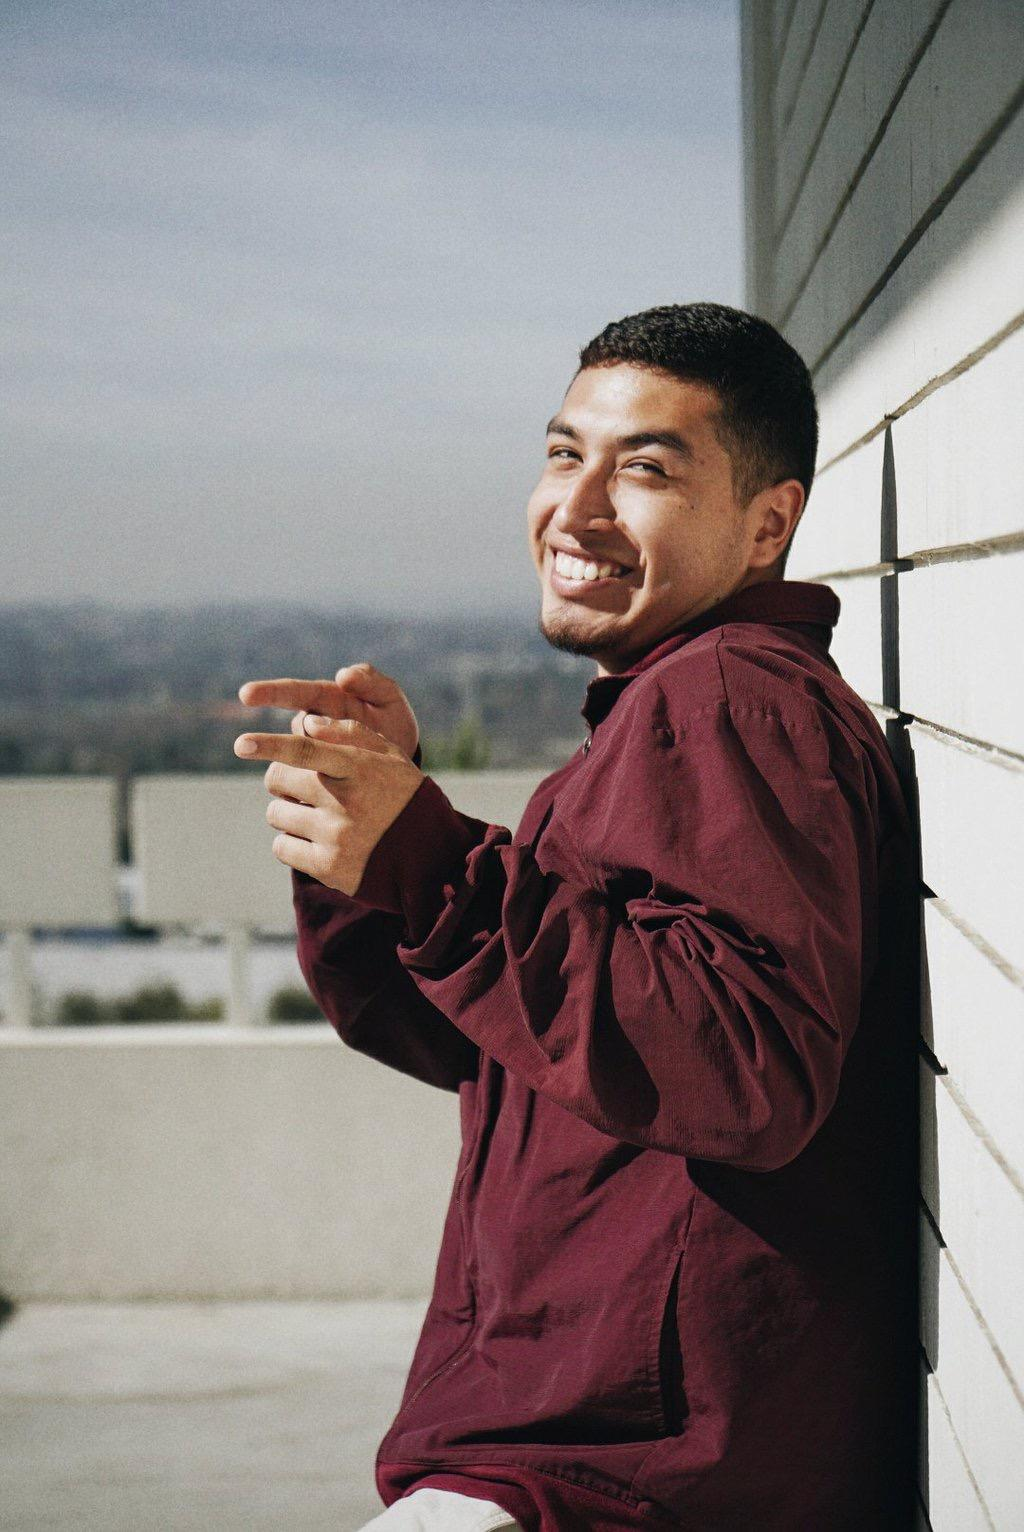 Freddy Vasquez shows off his bright smile  on campus where he promotes most of his music.